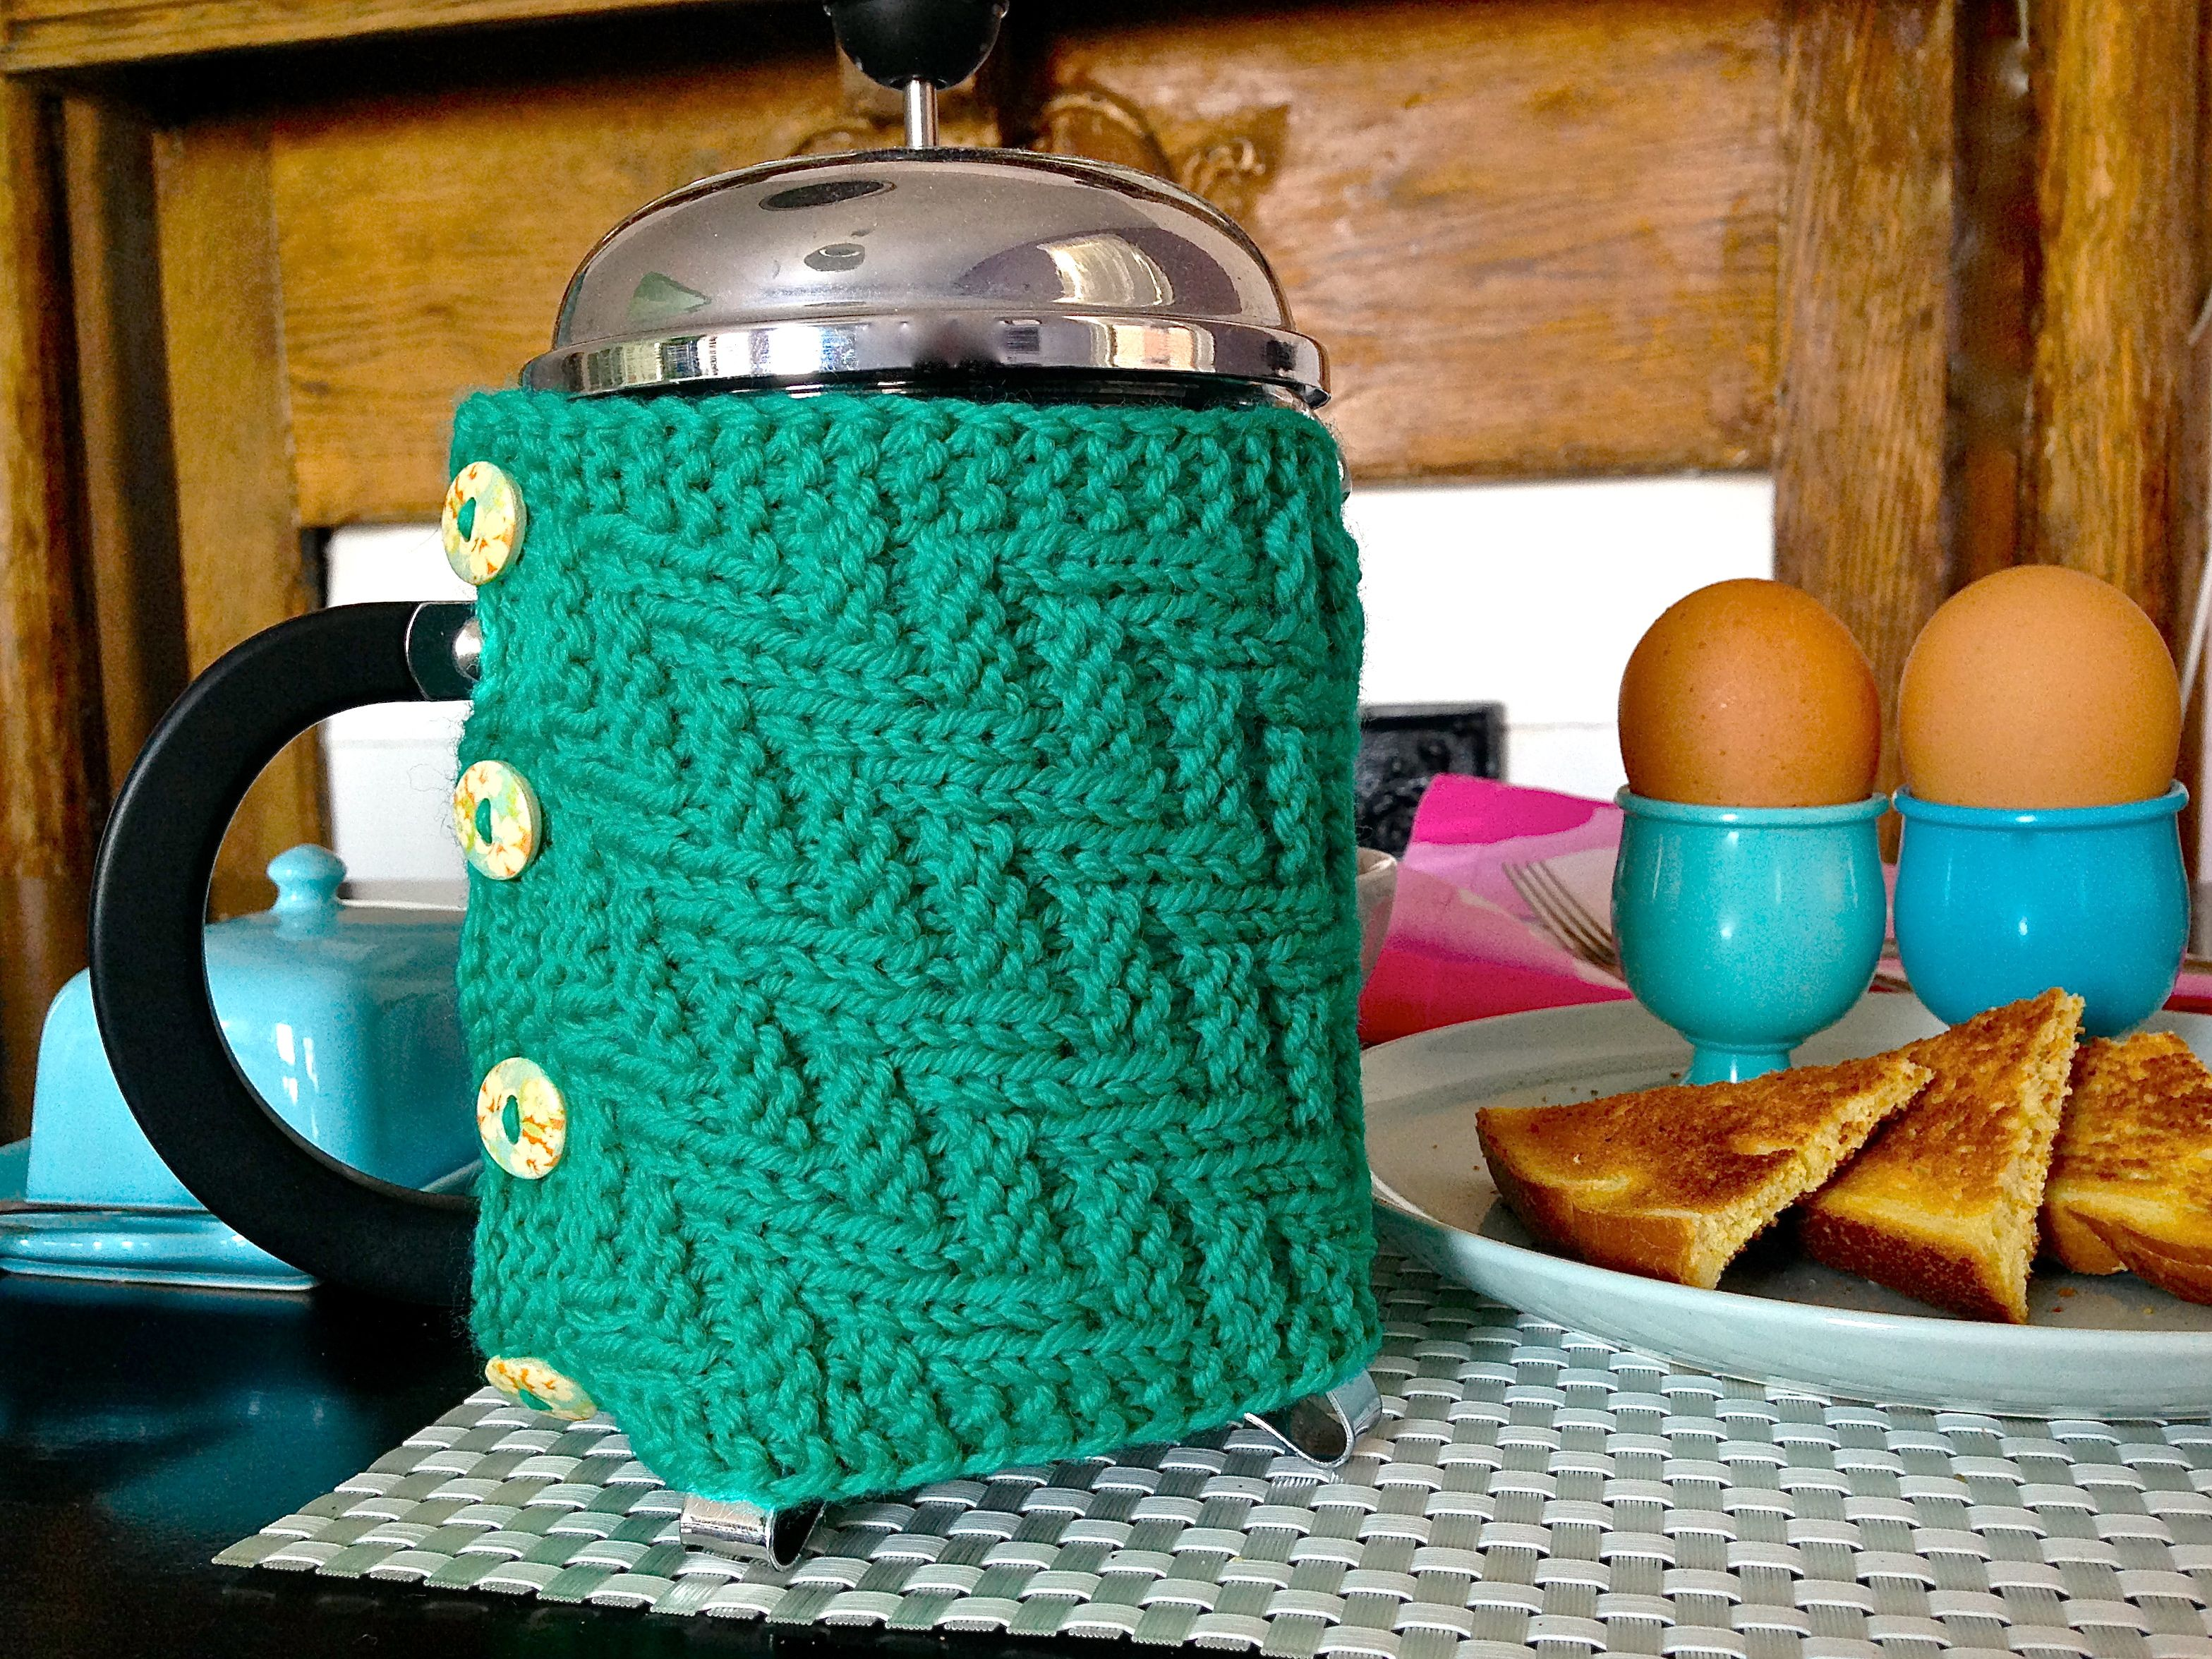 French Press cozy | Knit stitches | Pinterest | French press, Cozy ...